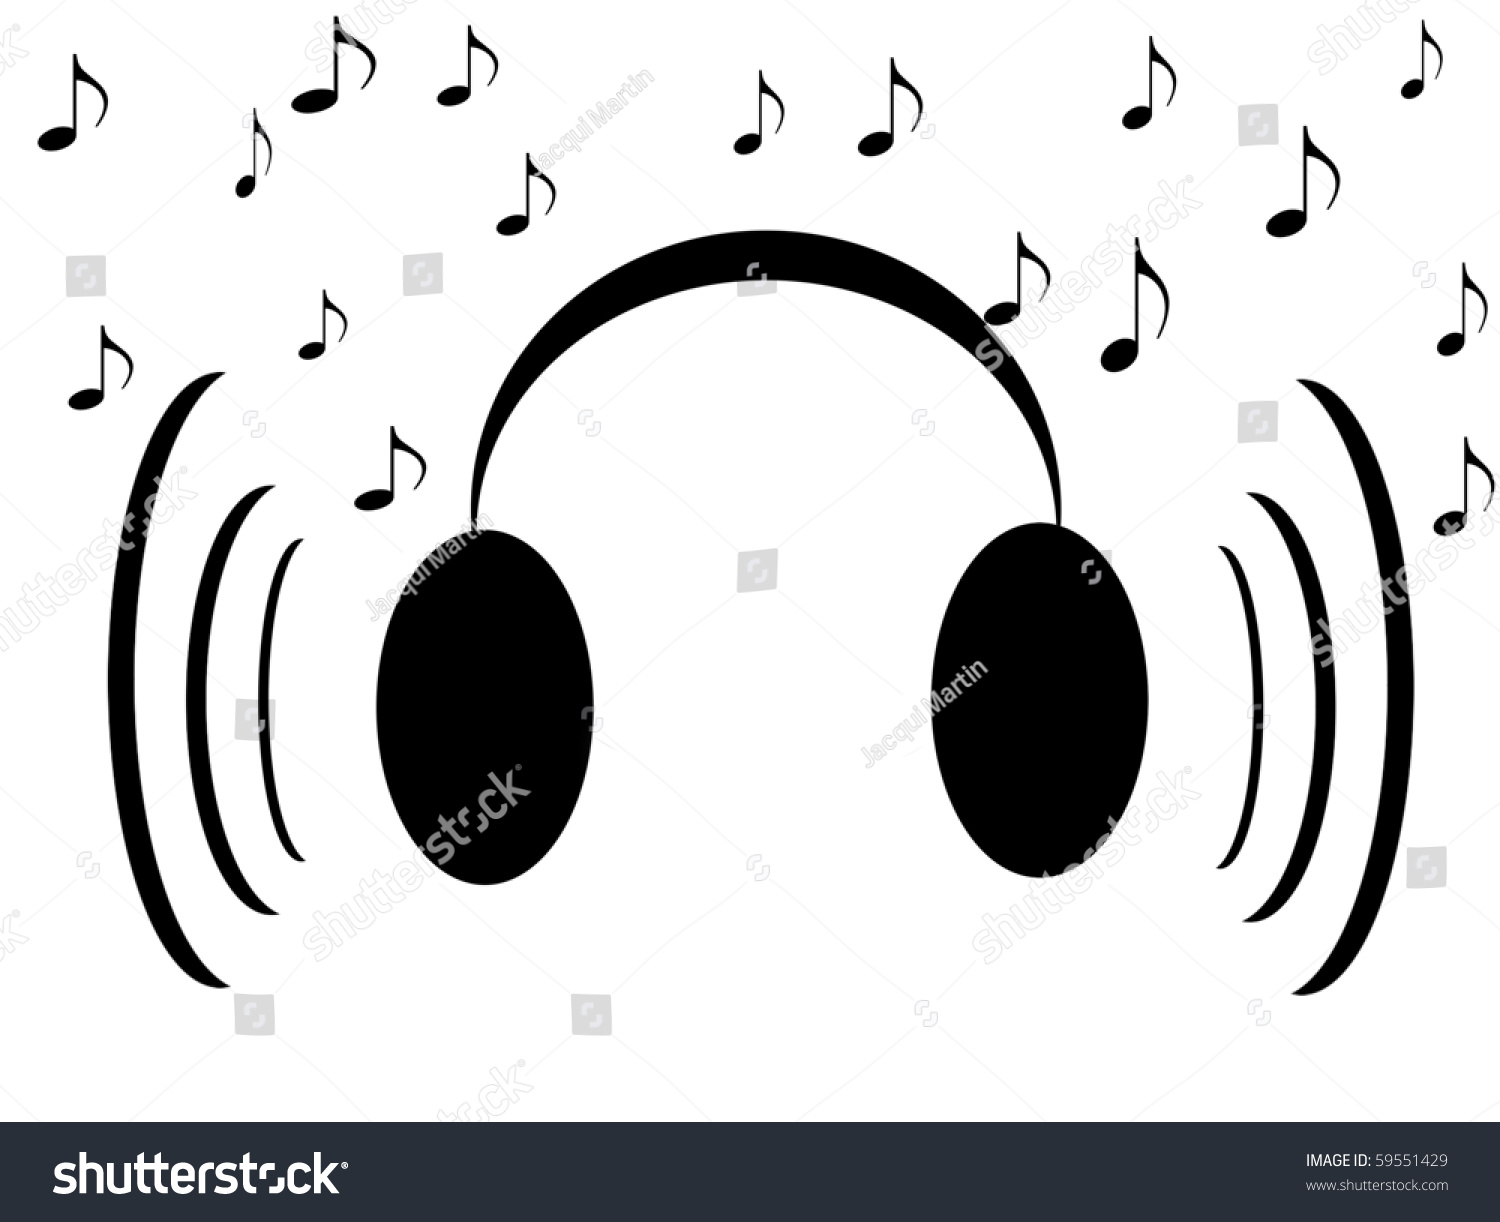 Headphones Music Notes: Headphones Surrounded By Musical Notes Stock Photo